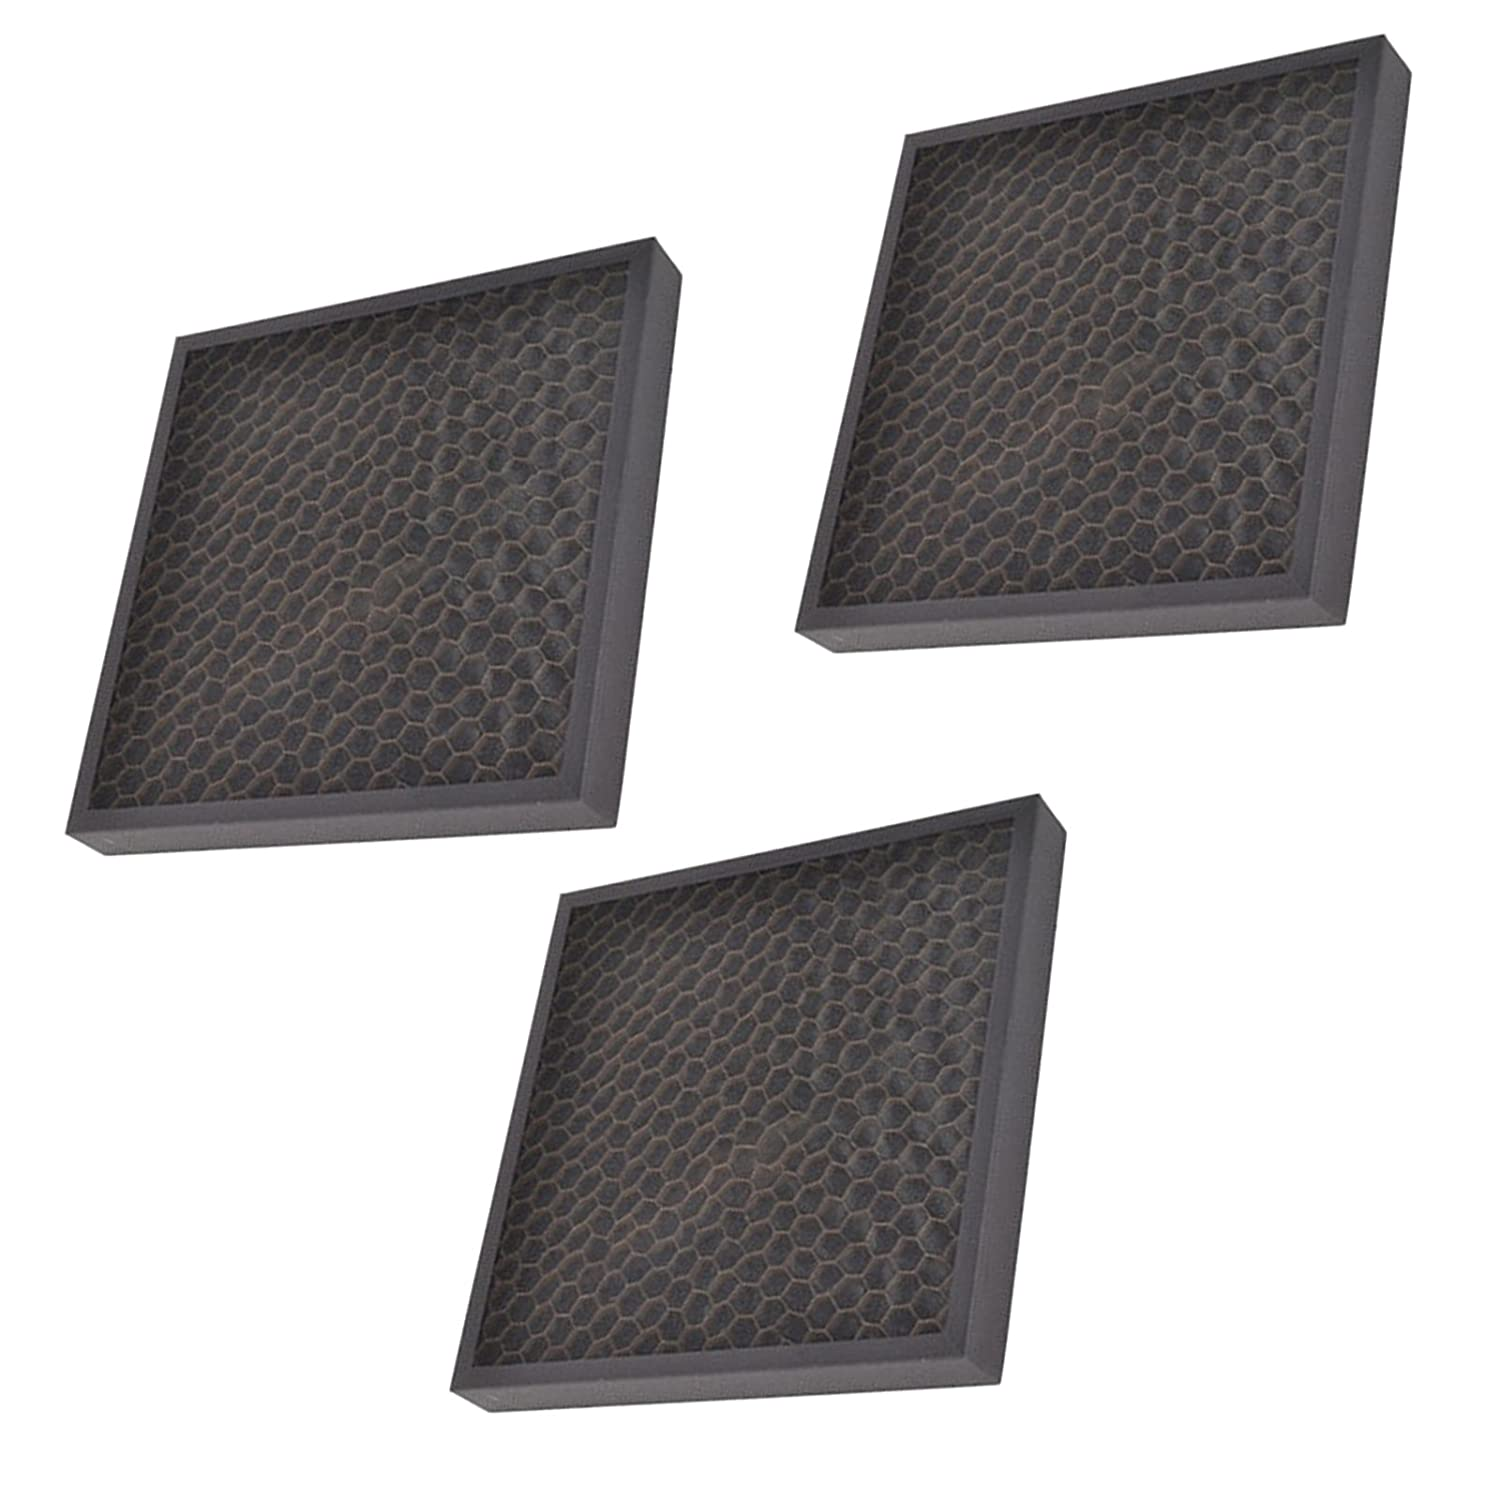 SPARES2GO Carbon Cartridge Filter for Delonghi AC100 & AC150 Air Conditioner (Pack of 3)